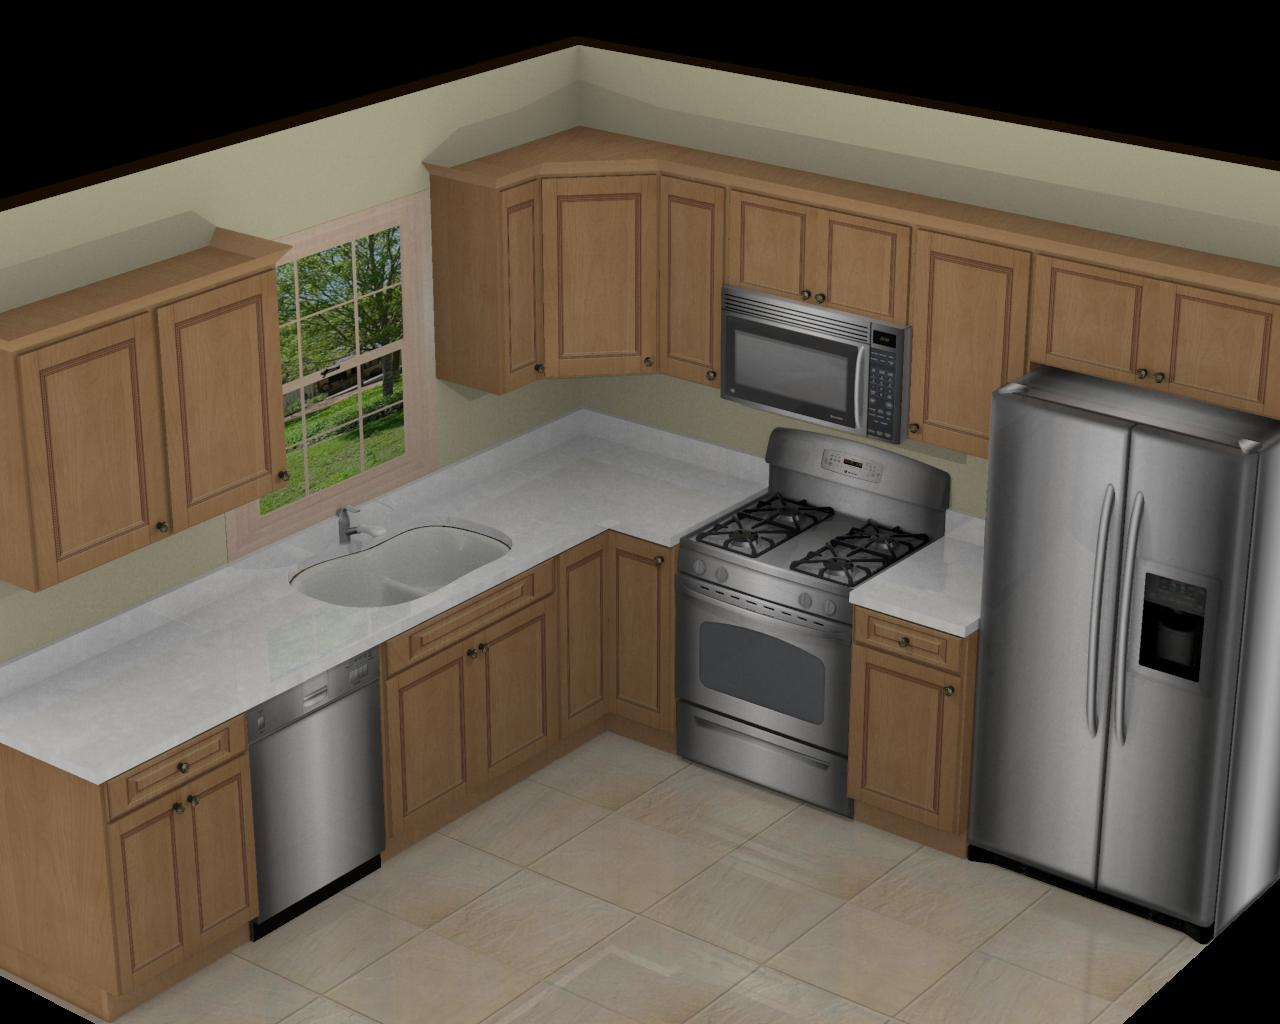 Foundation dezin decor 3d kitchen model design for Kitchen remodel design